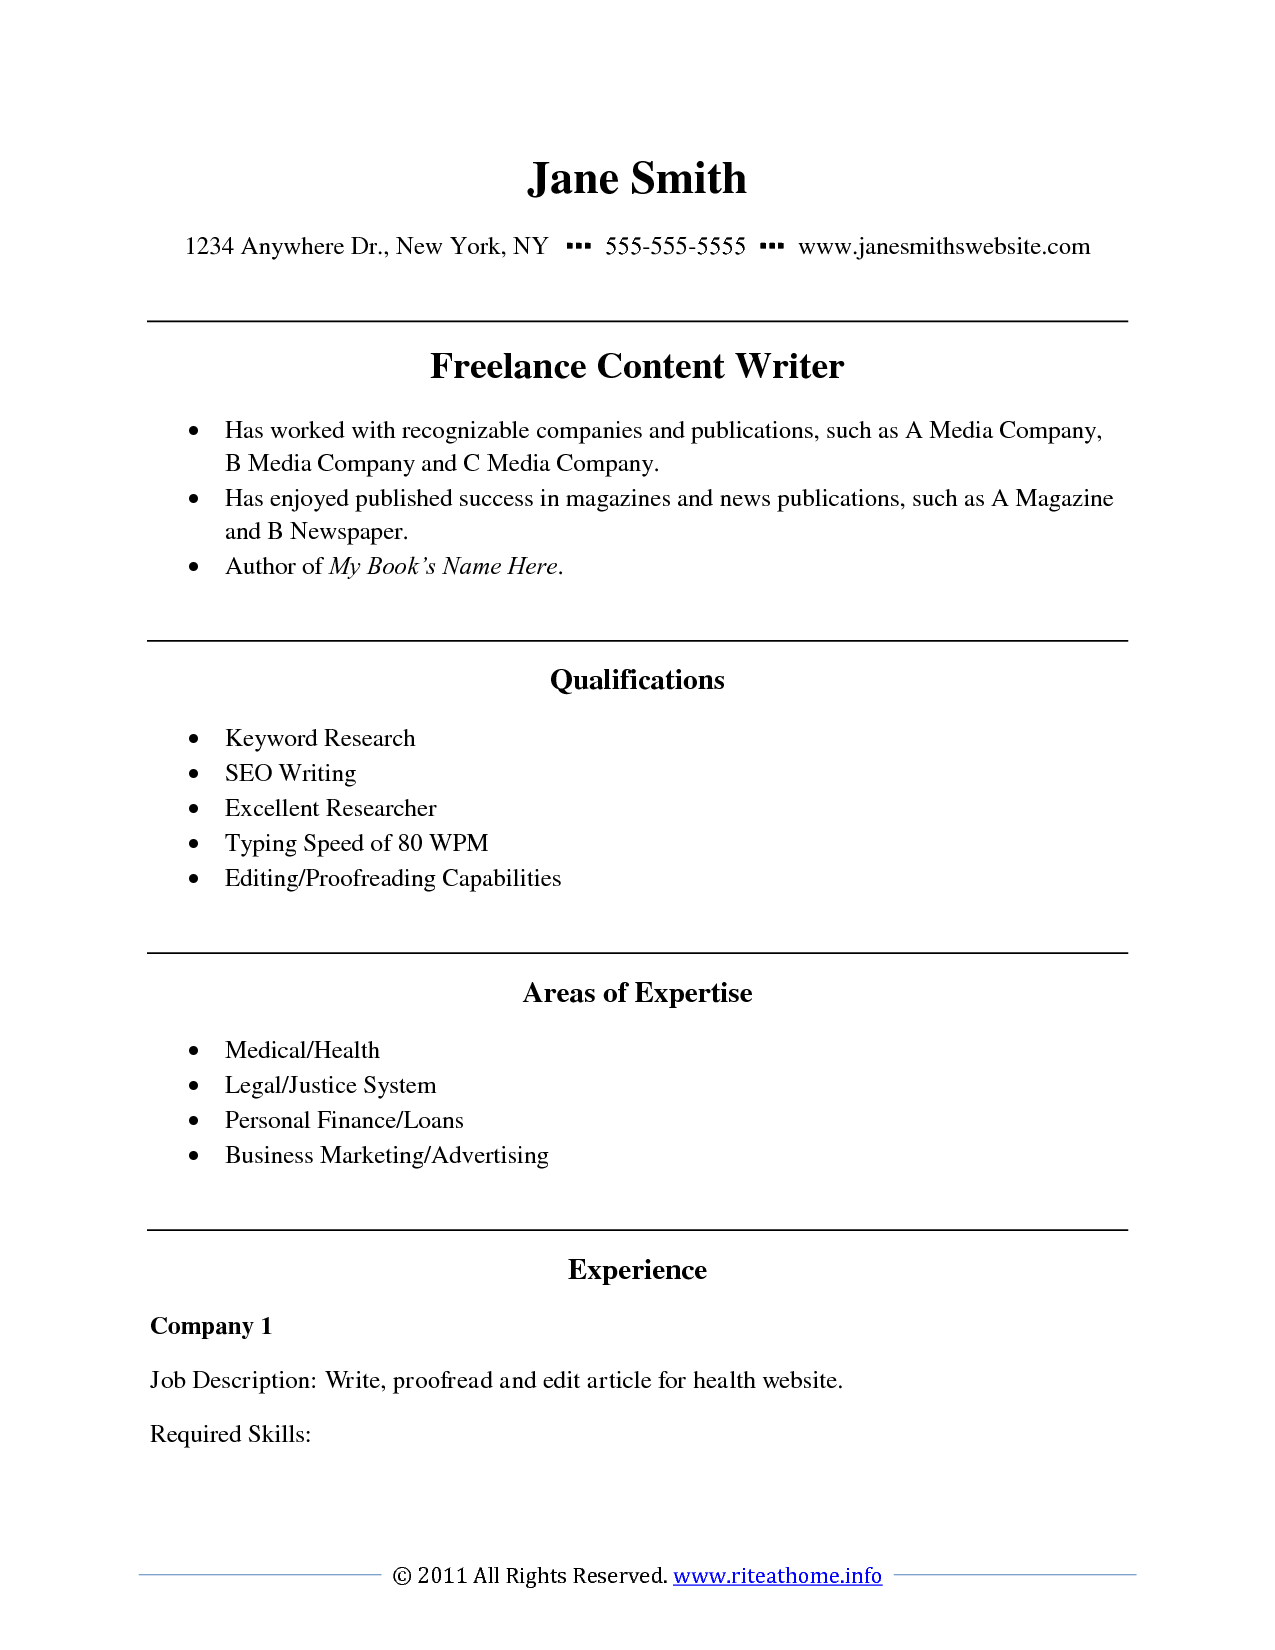 Resume Writing Examples Sample Resumes HDWriting A Resume Cover